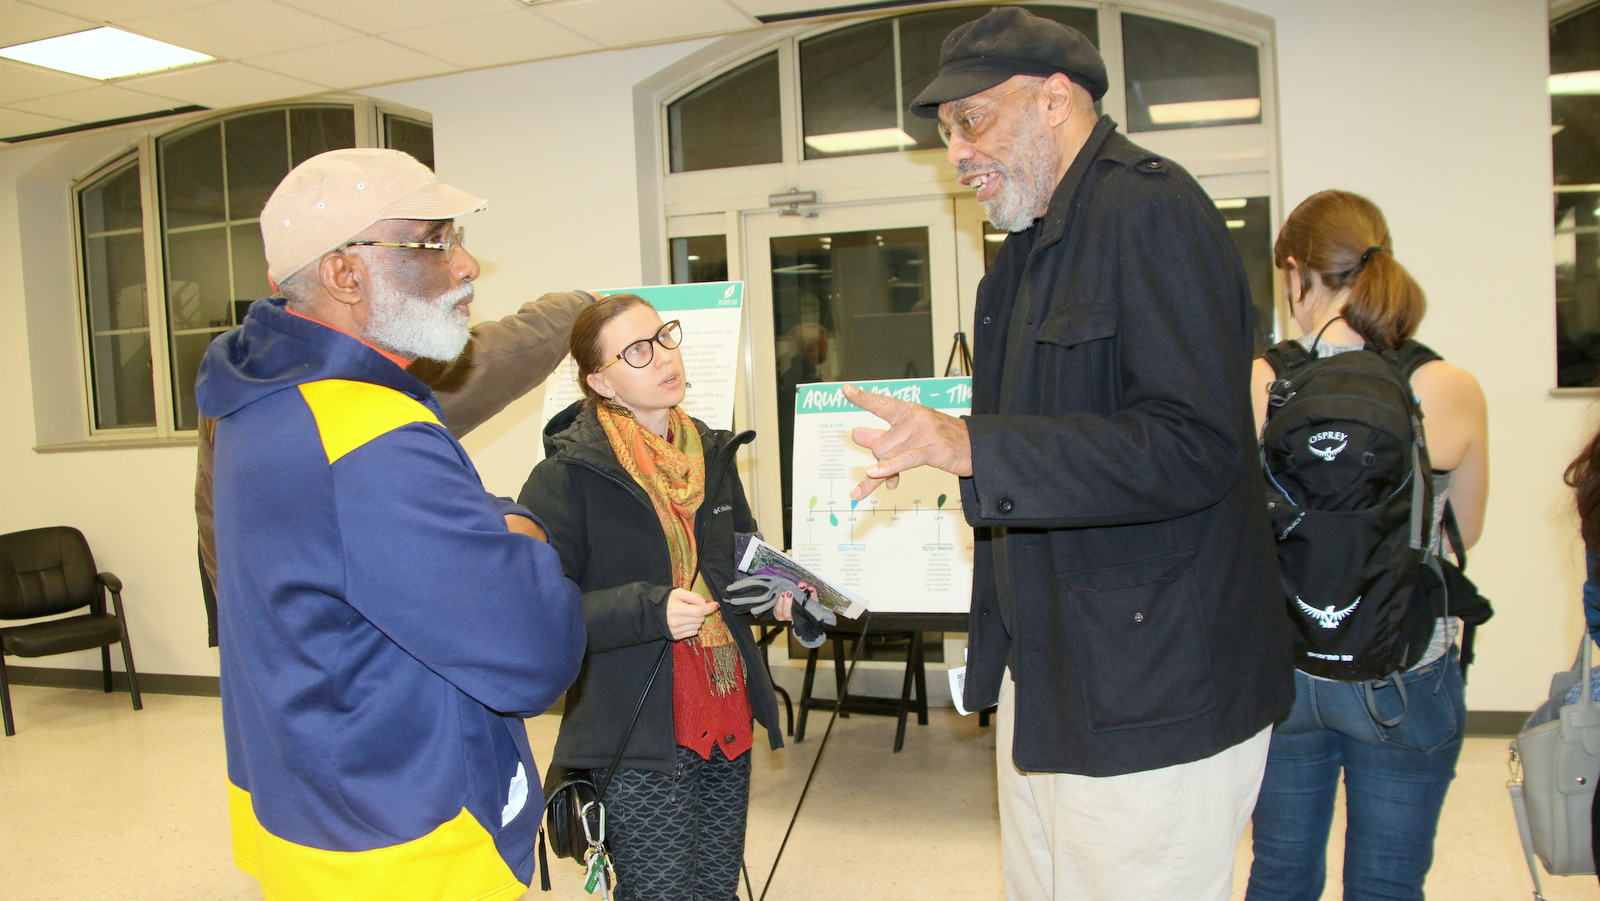 Ken Morgan (right) with fellow Druid Park Pool users discusses the city's planned renovations there. (Fern Shen)